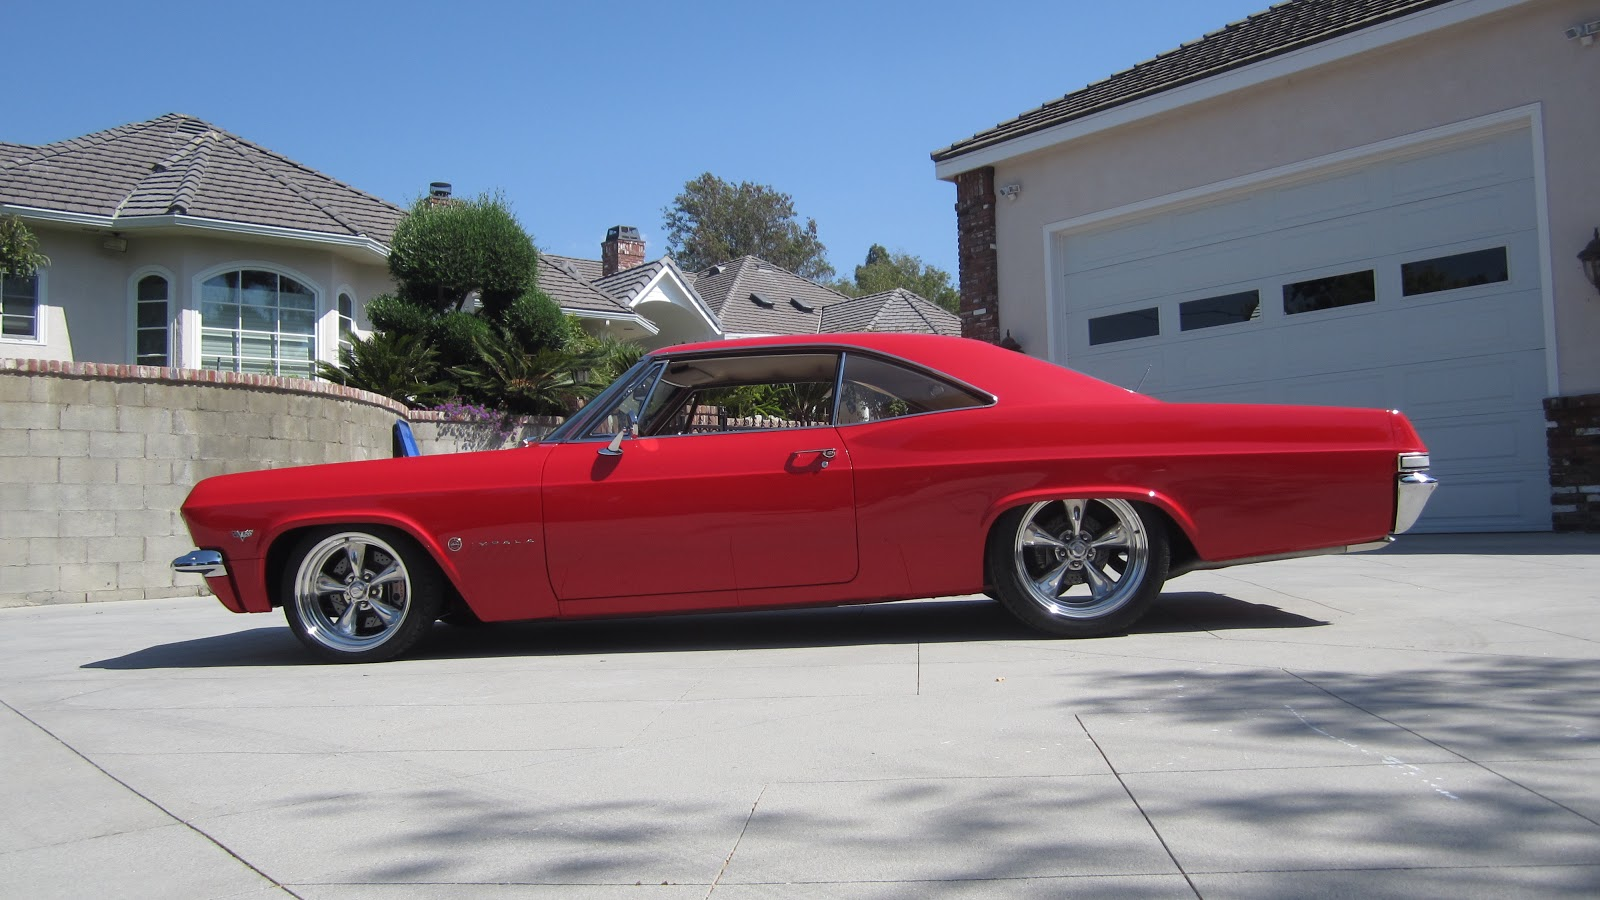 2005 Chevy Impala Transmission Covering Classic Cars : 1965 Chevy Impala from the ...